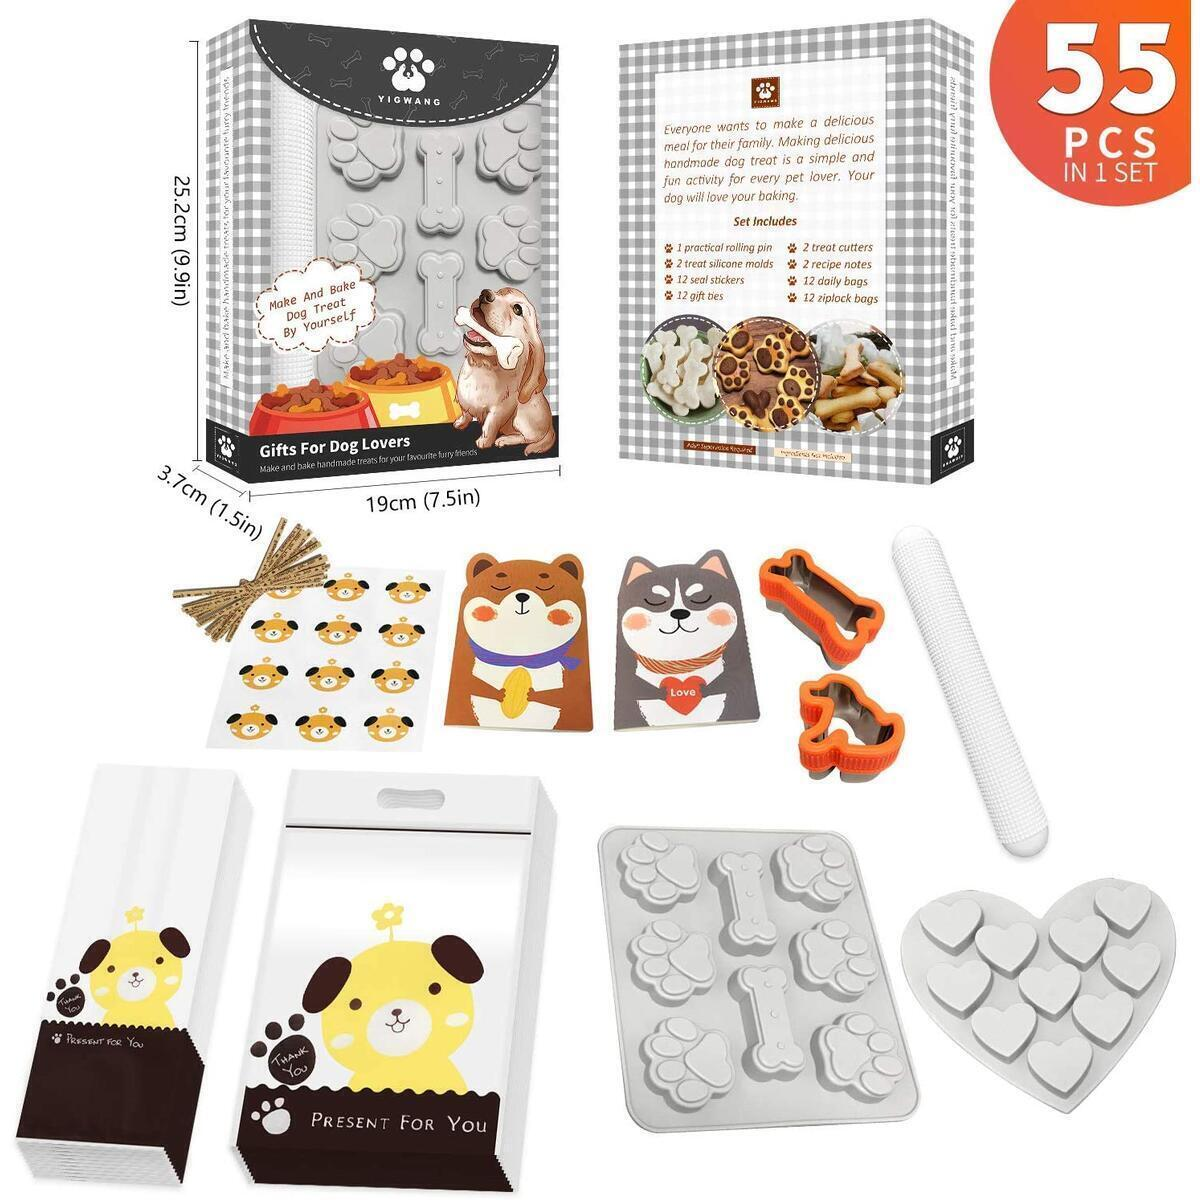 YIGWANG Dog Bone Cookie Cutter, Dog Cookie Cutters for Treats and Dog Treat Molds Kit, 55 Pcs in 1 Kit, Dog Lovers Gifts, including 2 Dog Treat Cutters, 1 Dog Paw Silicone Molds, 24 Dog Treat Bags.Etc